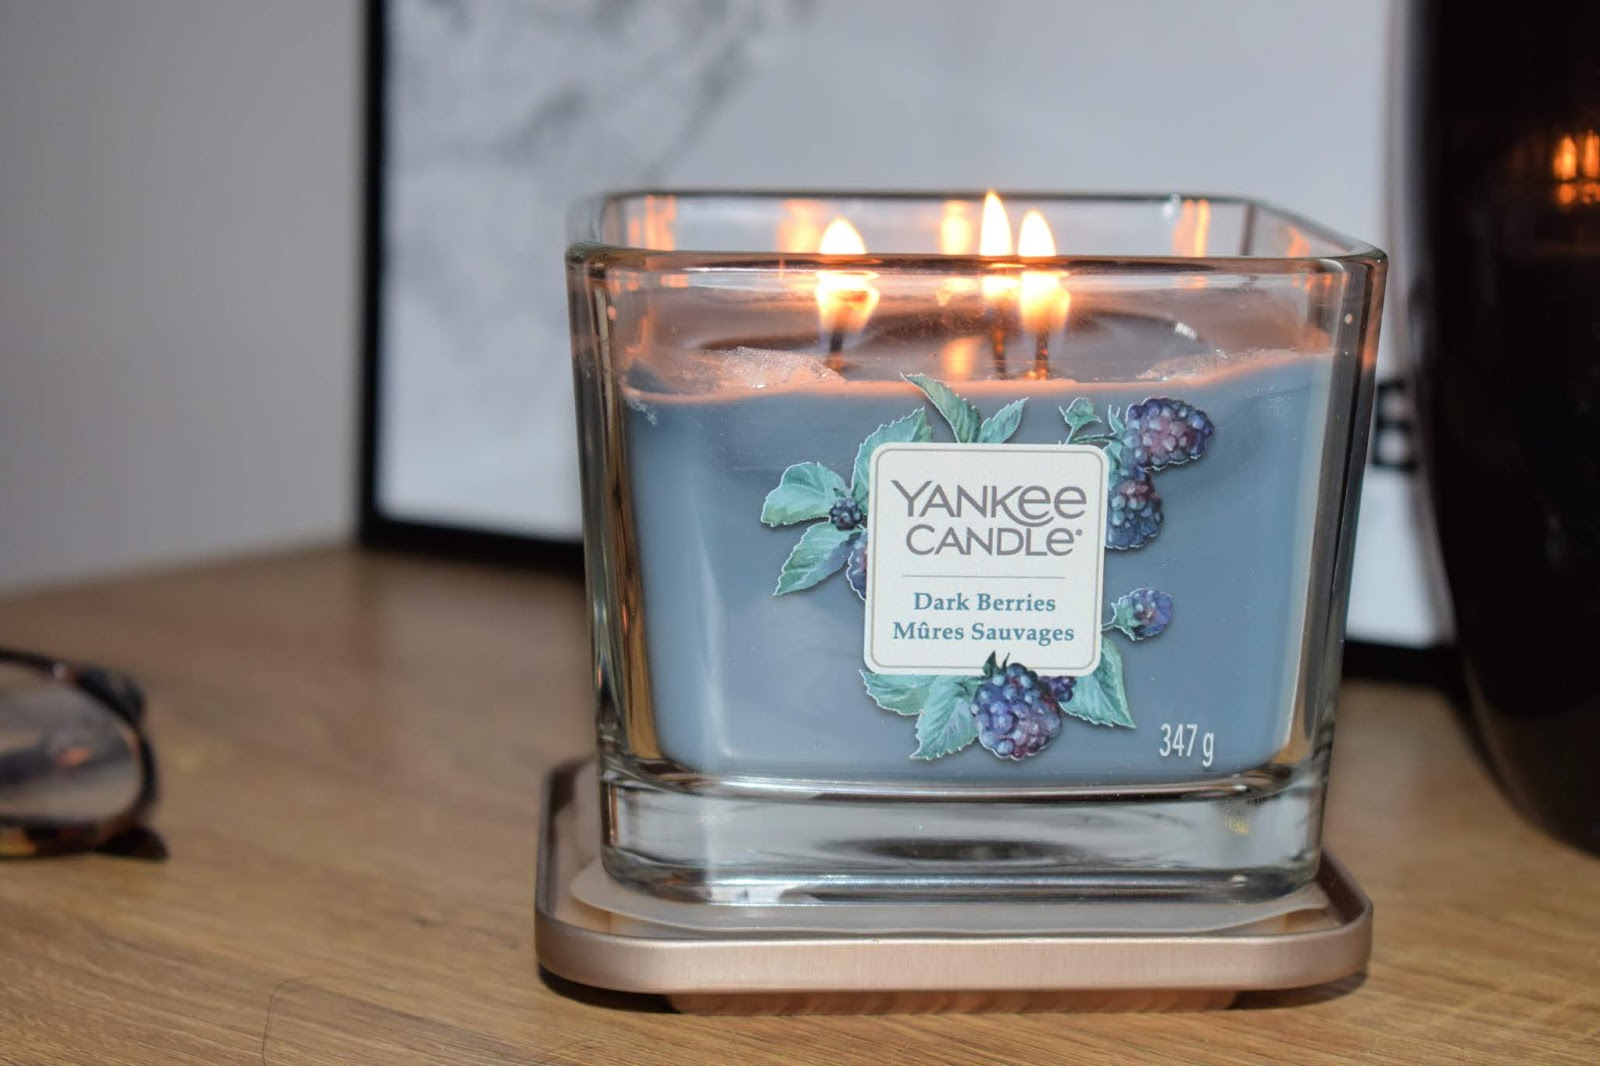 Yankee candle Dark Berries